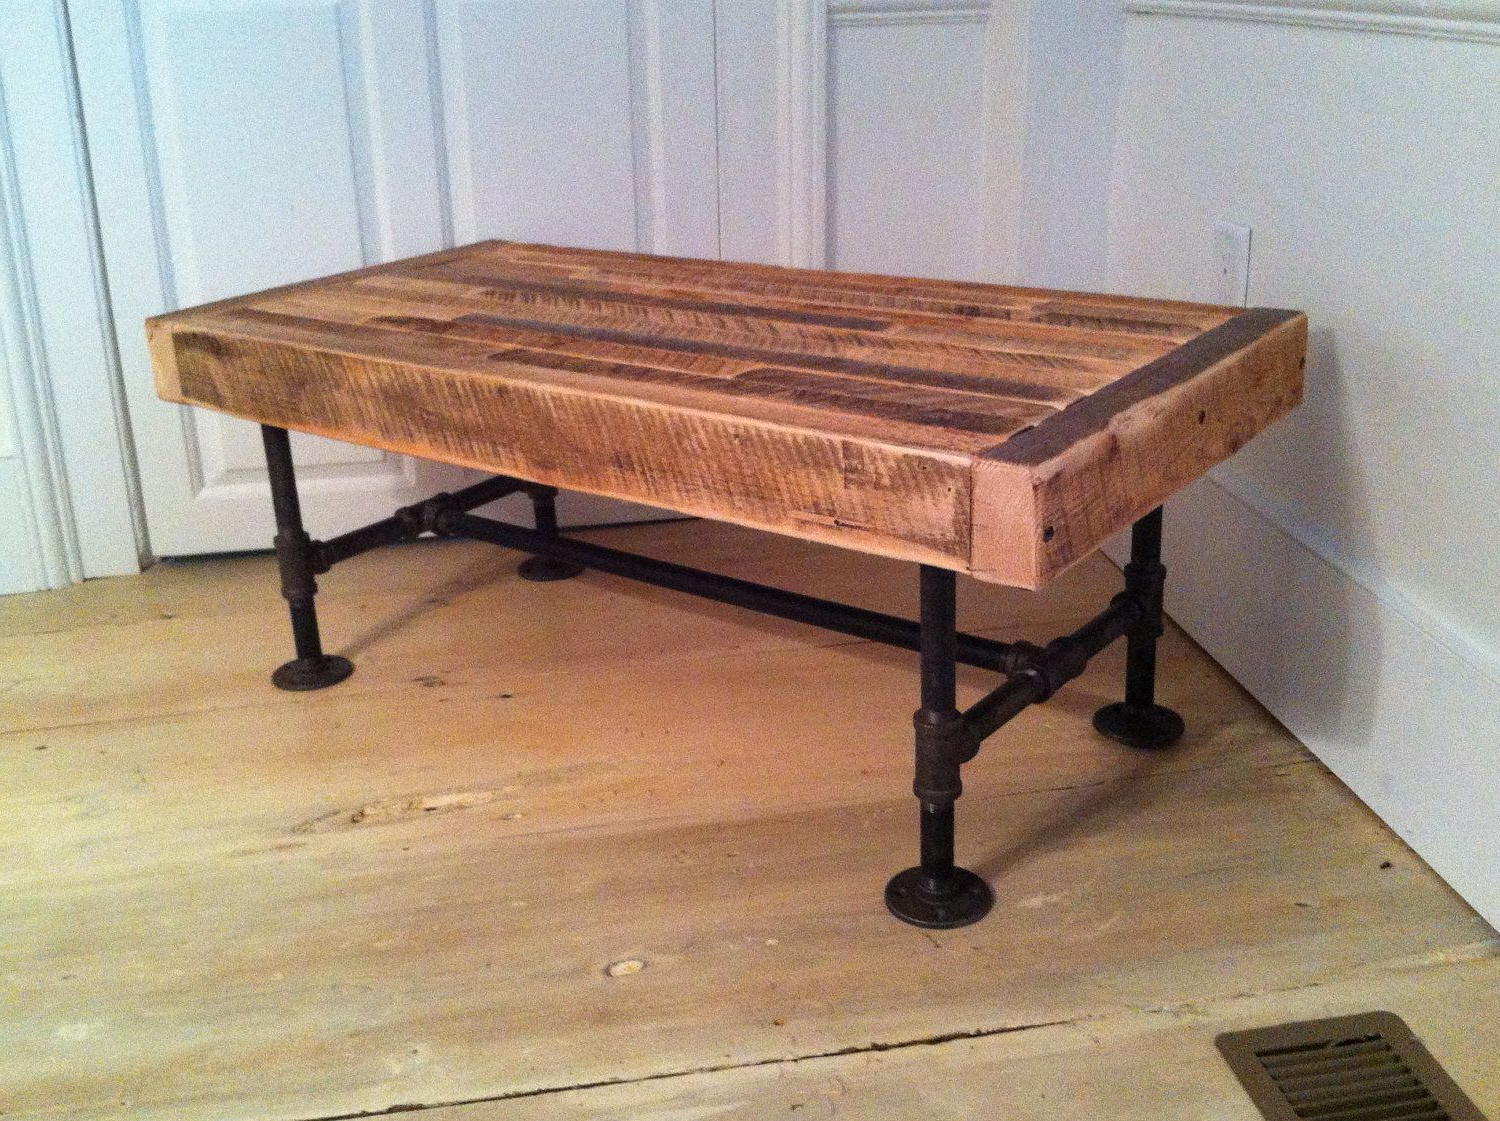 Pine Metal Tube Coffee Tables Inside 2018 Industrial Wood & Steel Coffee Table, Reclaimed Barnwood With (Gallery 5 of 20)